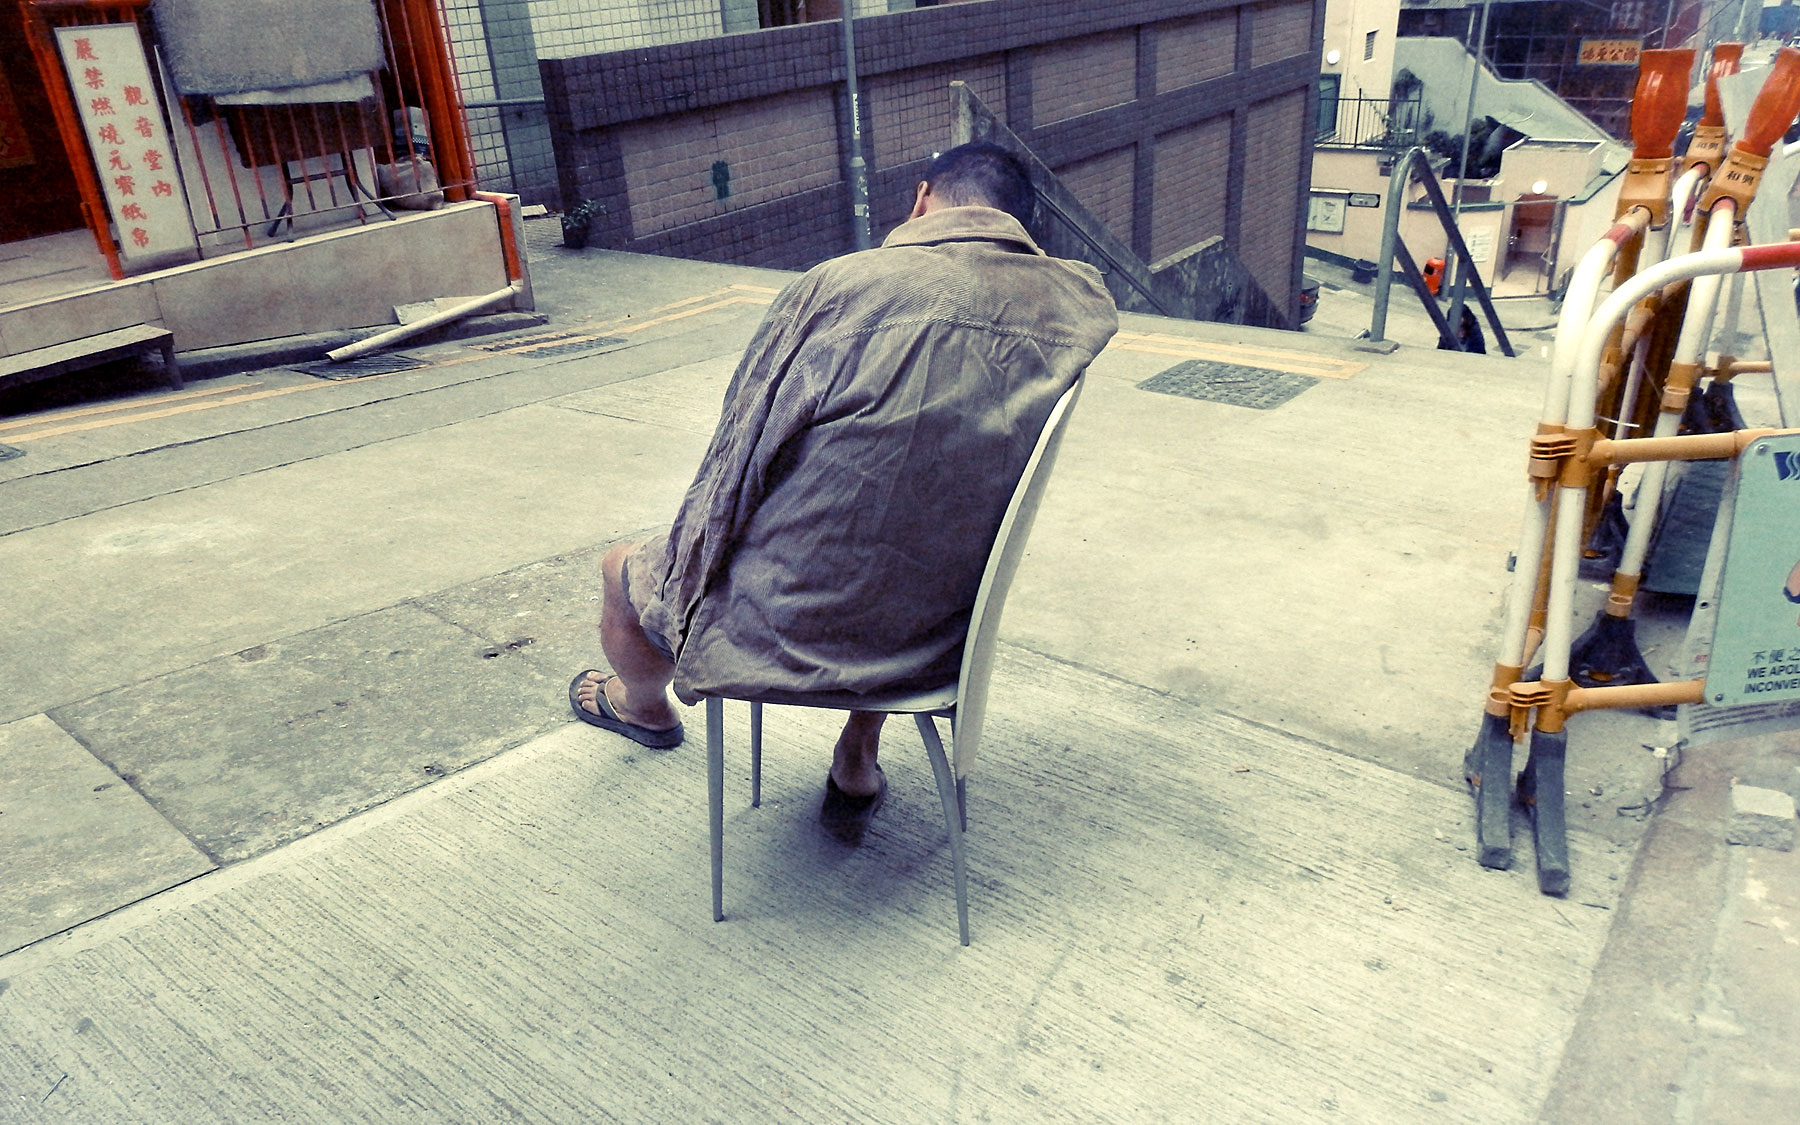 Good Boy Wolf Photographer, filmic portrait, Chinese man sleeping on a chair